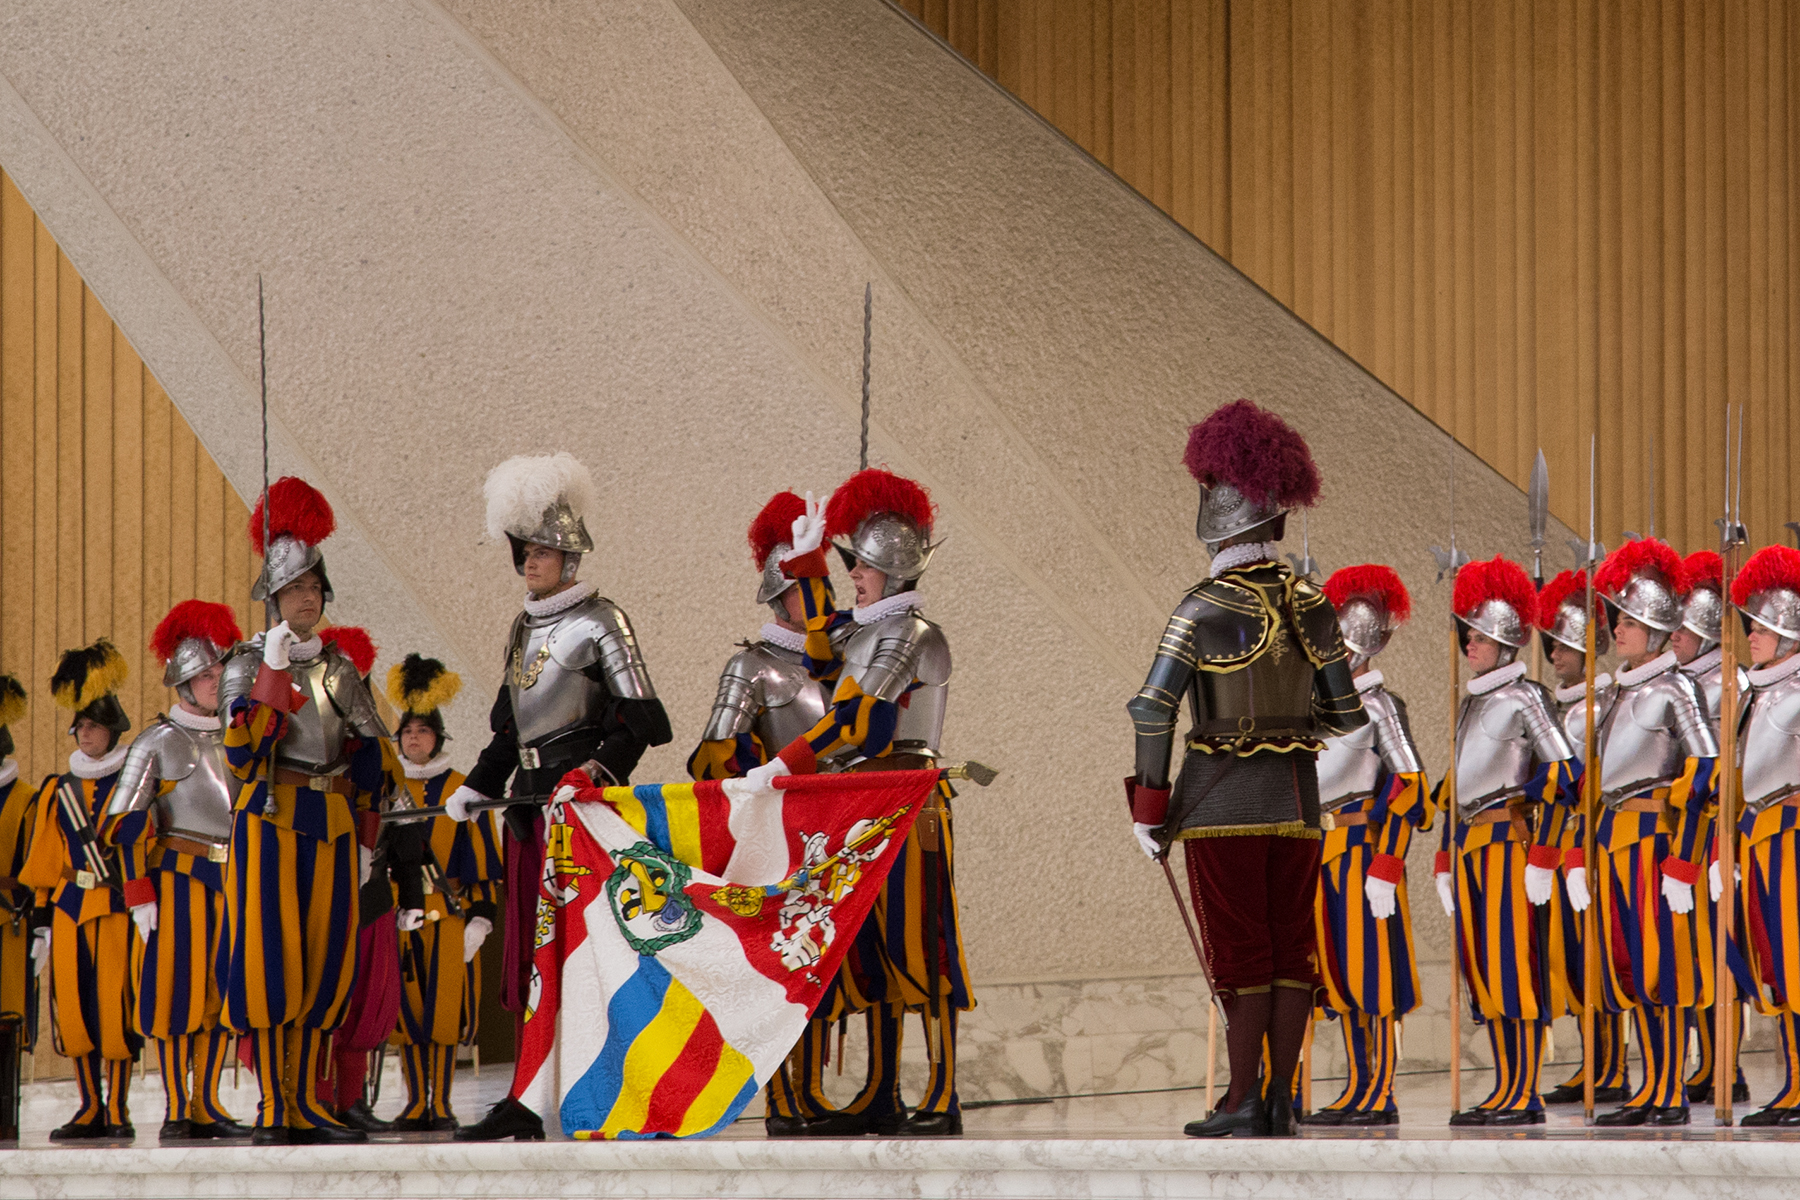 Pontifical Swiss Guard swearing-in ceremony at the Paul VI Audience Hall, Vatican City.